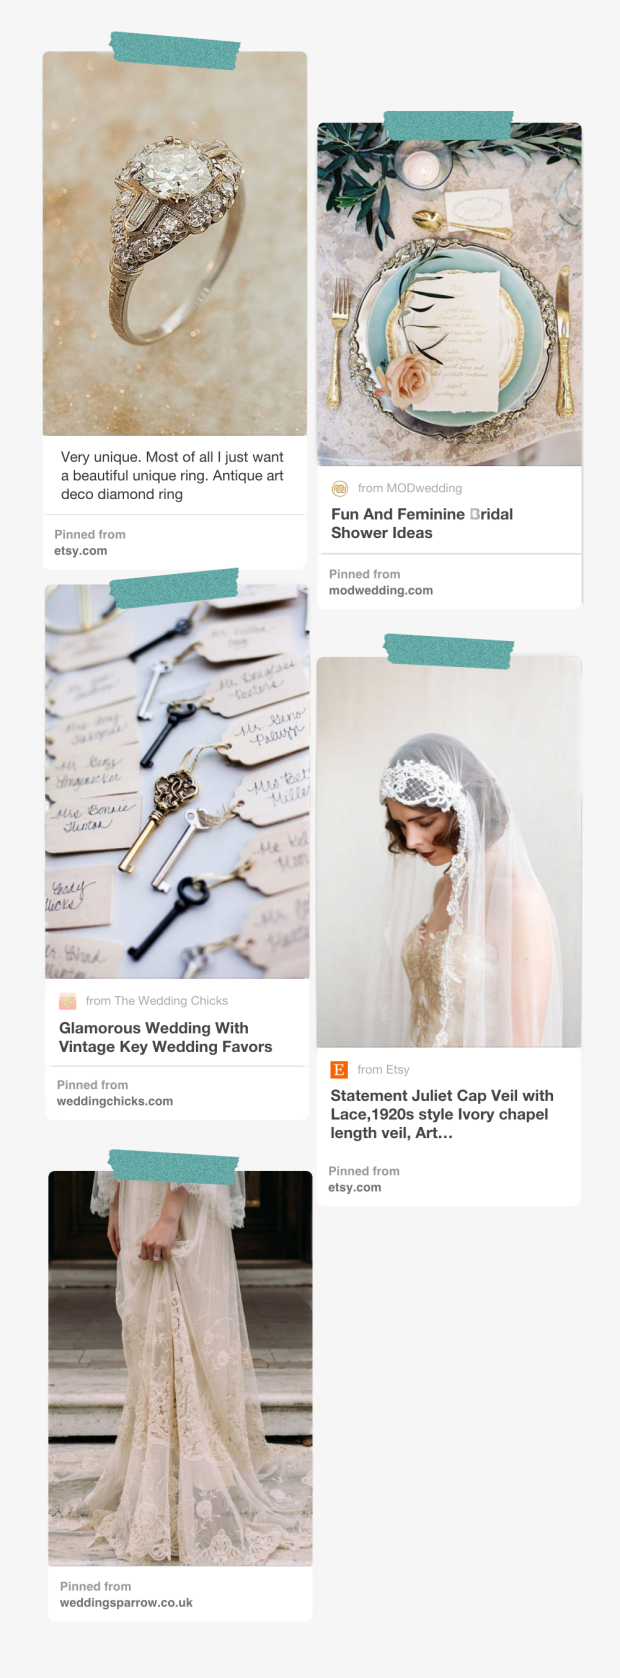 If you love intricately romantic details that modern wedding stores can't seem to replicate, you should consider going vintage for your big day